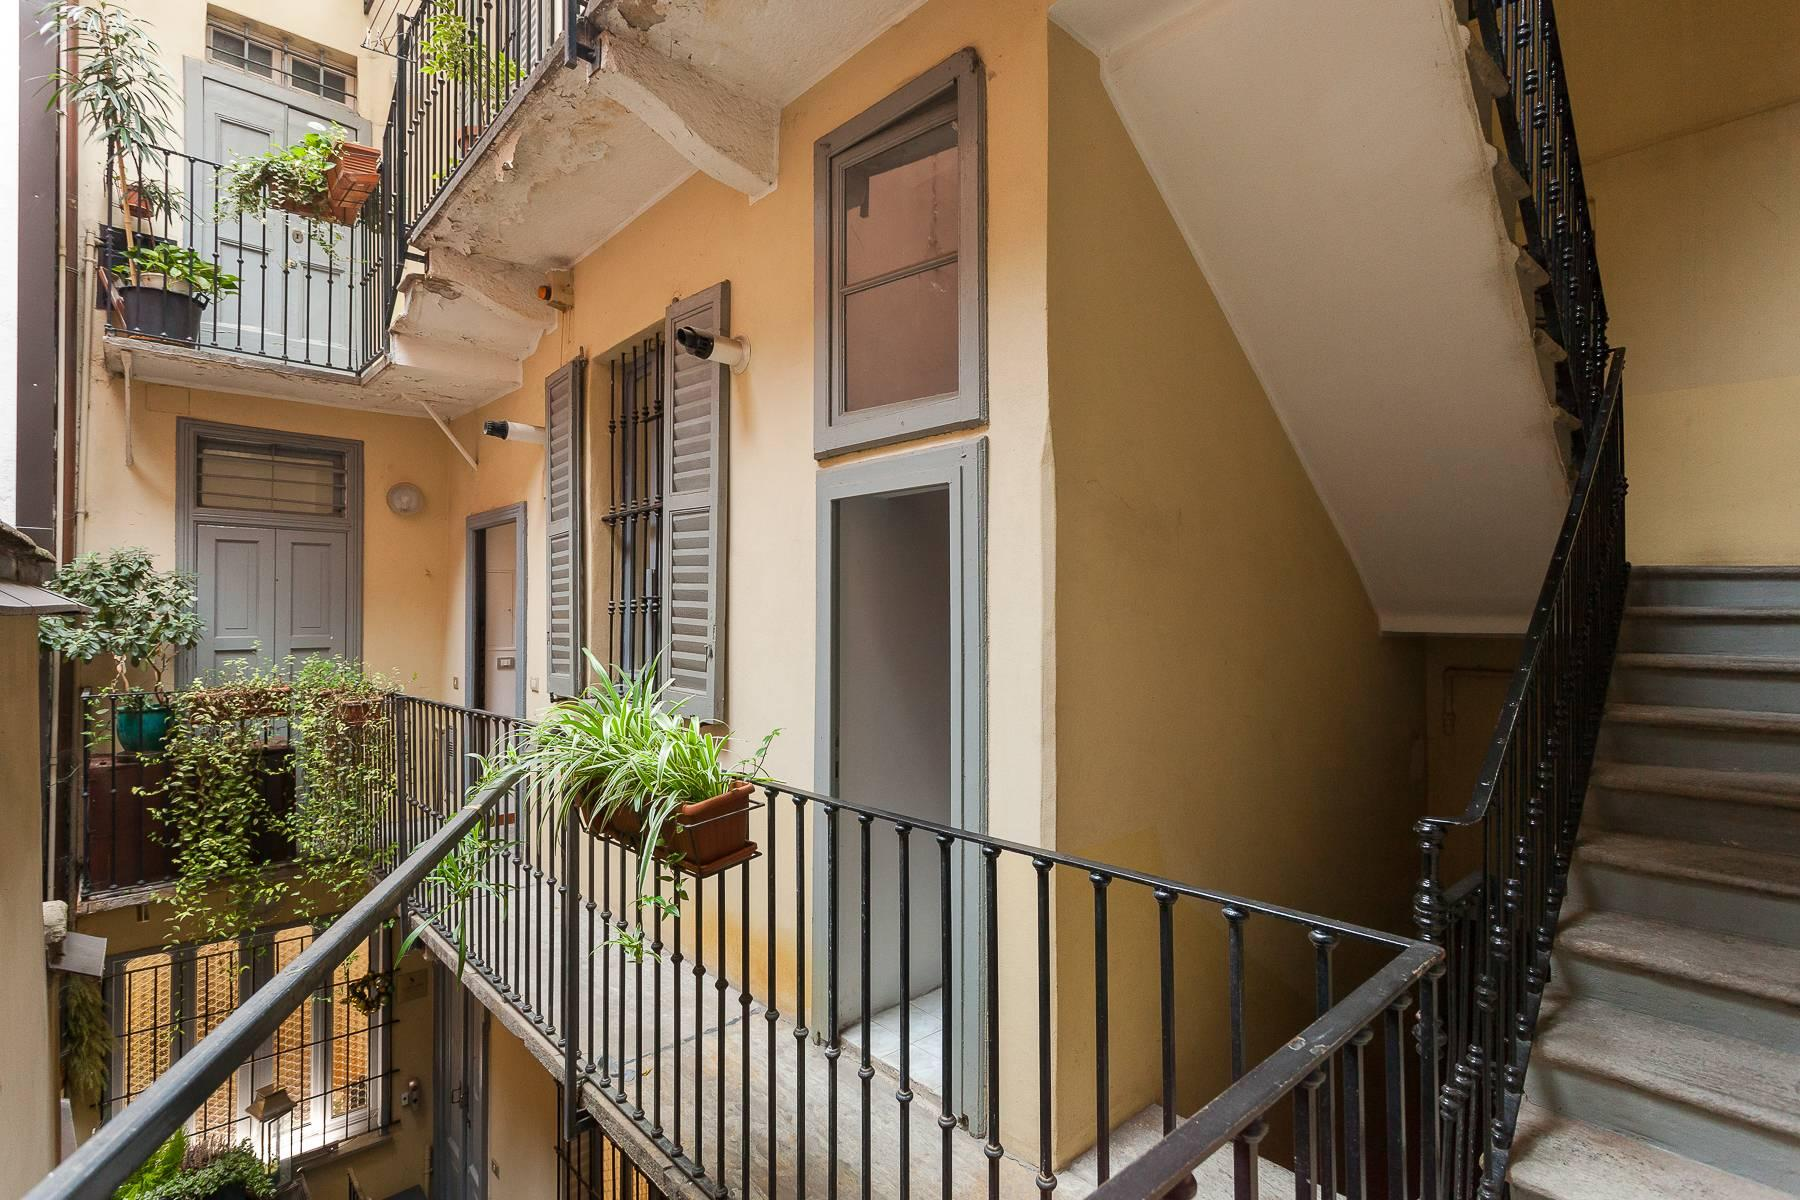 Fully furnished three-room apartment in the heart of Brera - 20